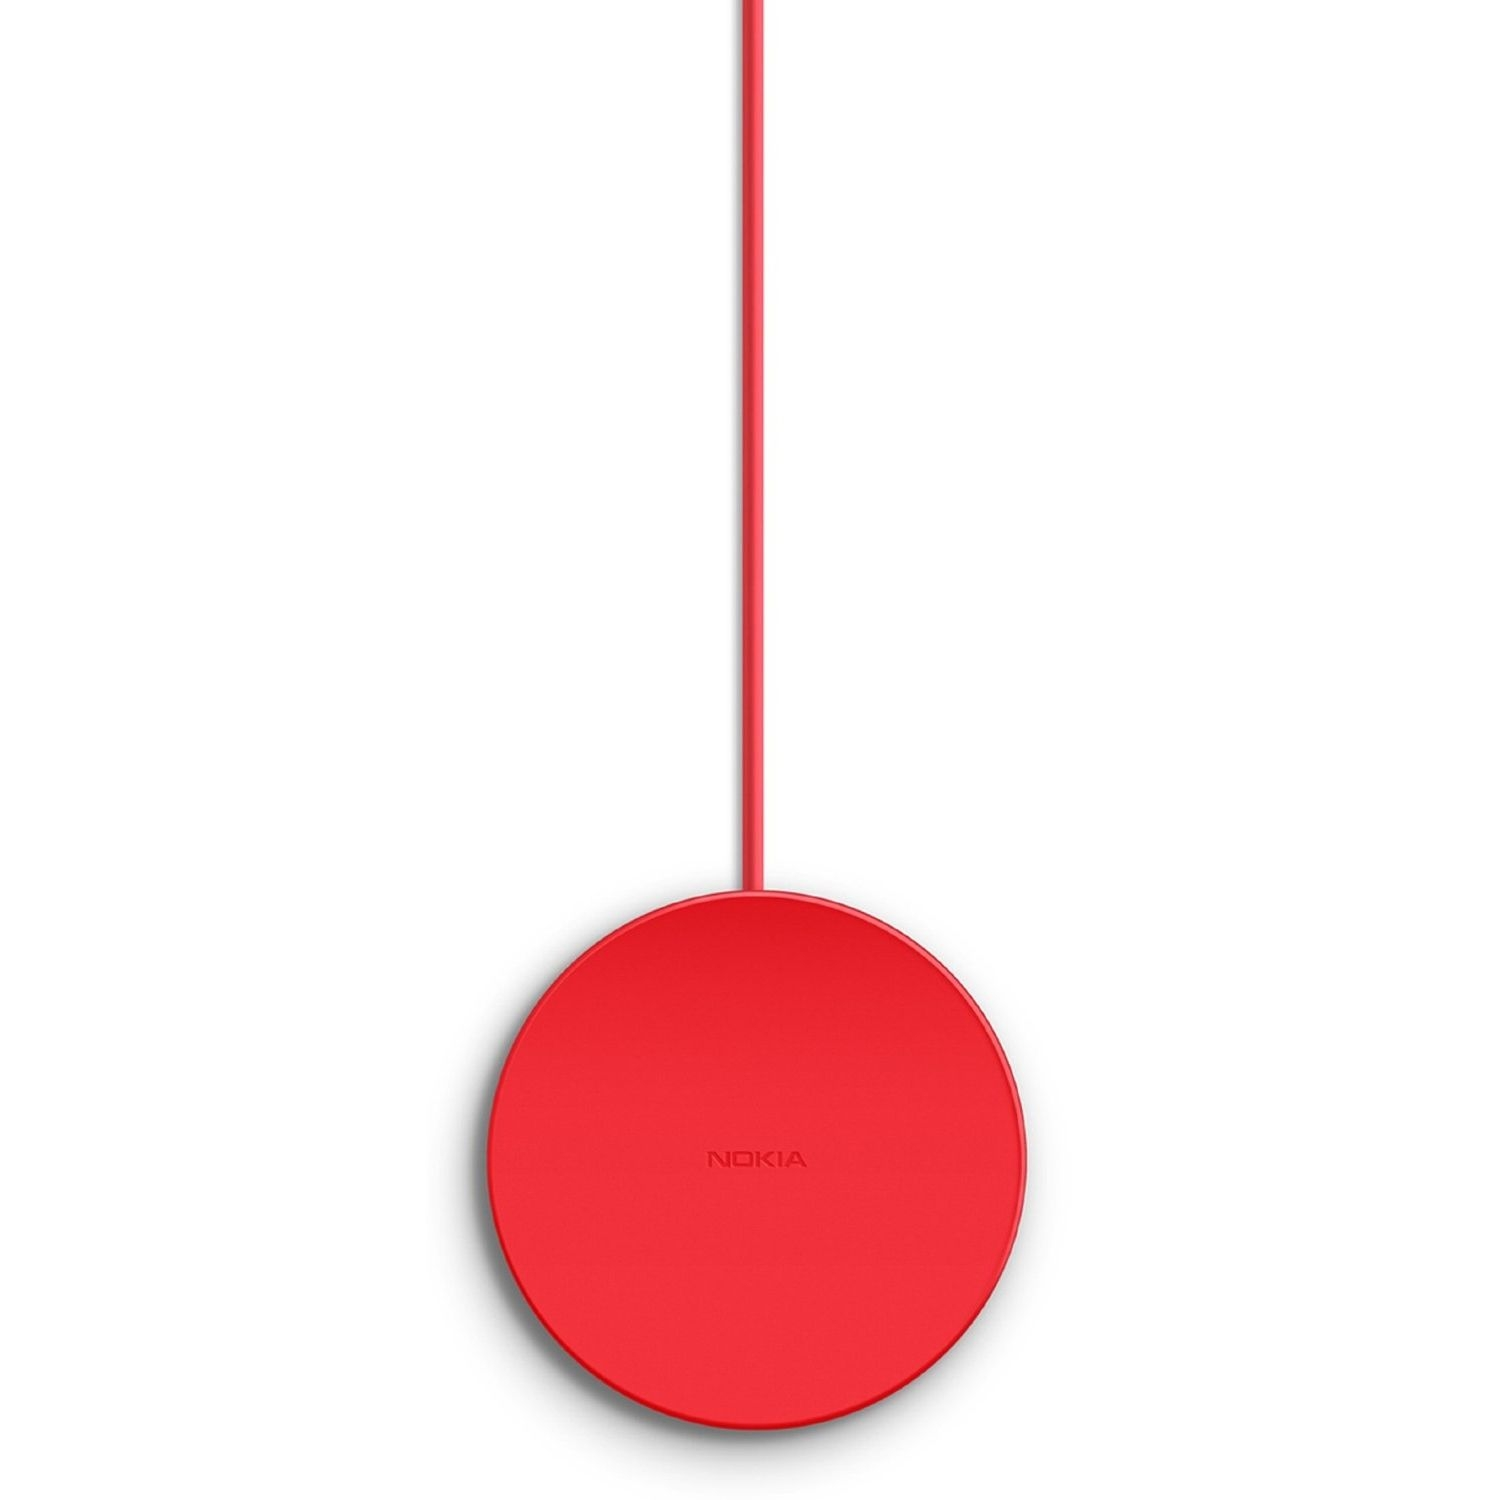 Nokia Induction Wireless Charging Pad DT-601 (red)